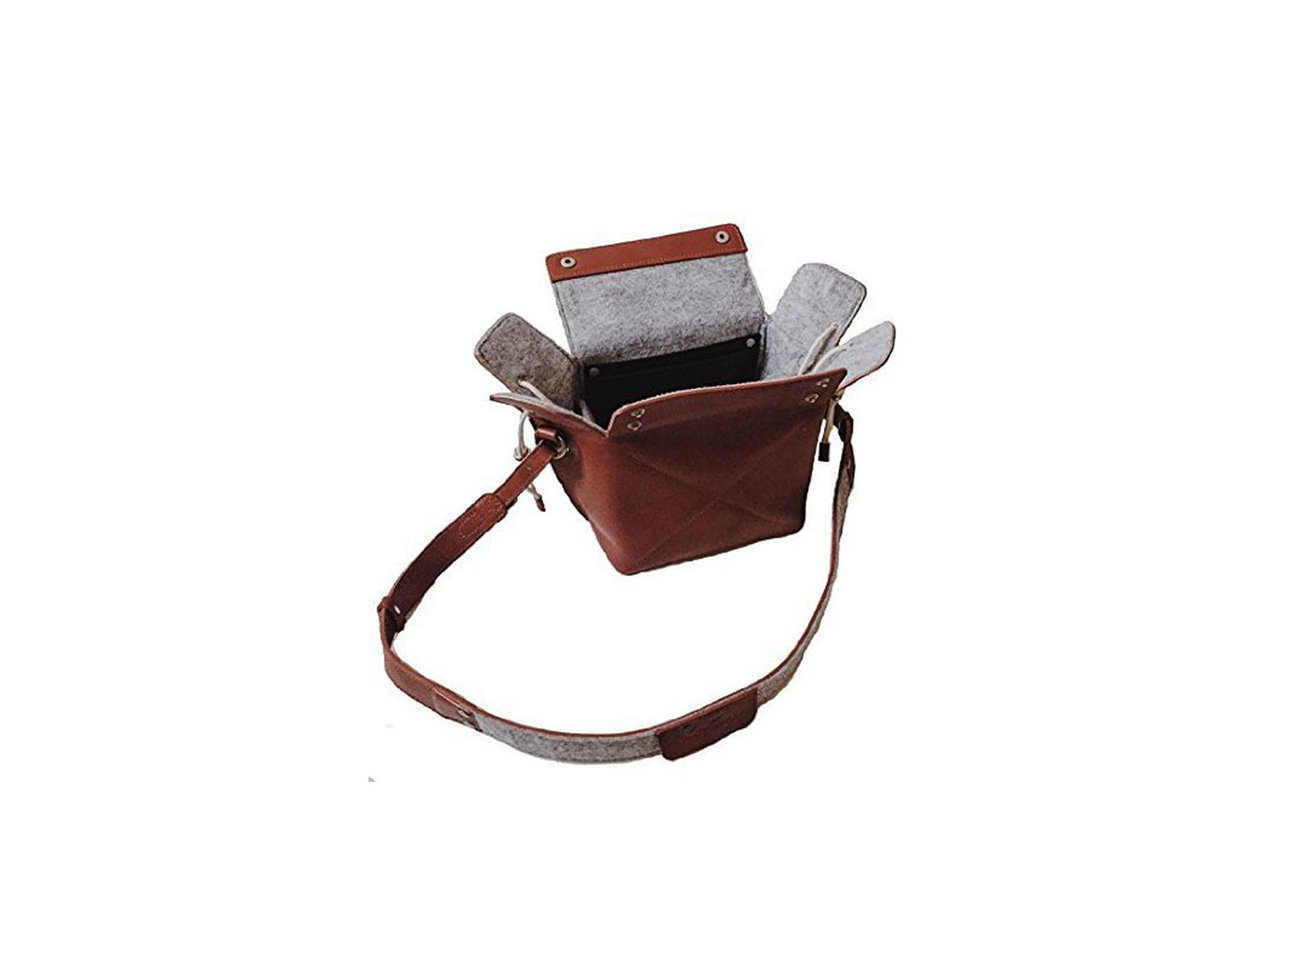 leather-camera-bag-amazon-prime-BESTSHOP1215.jpg